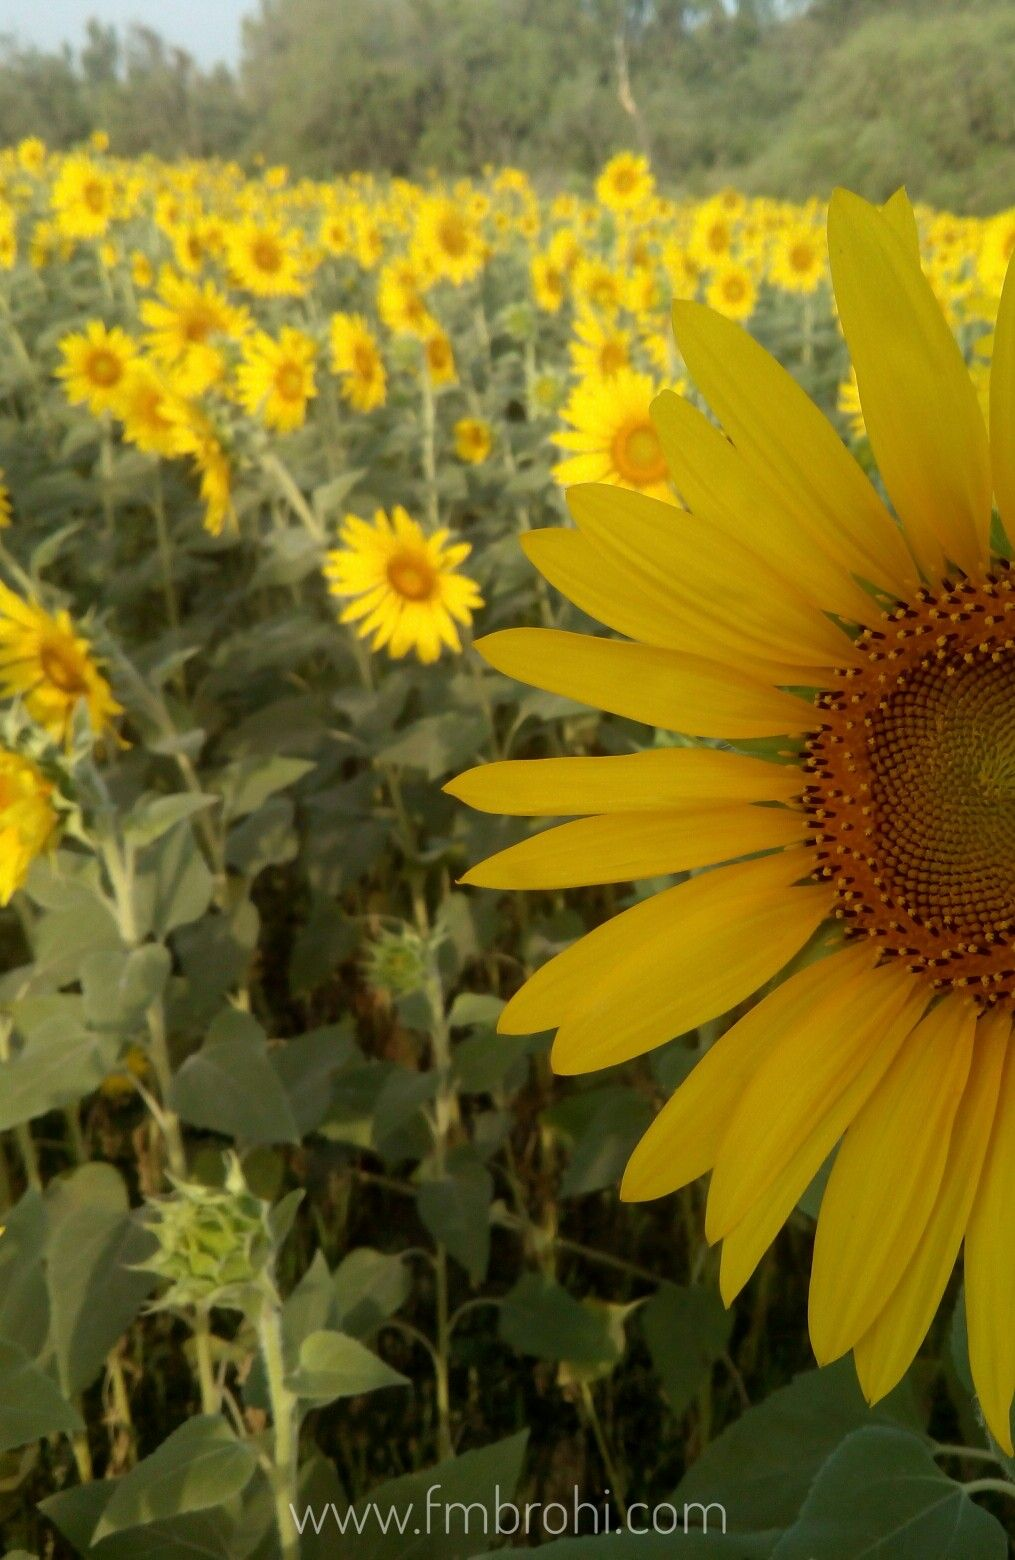 Sunflower field in a village at Shikarpur, Sindh, Pakistan ...